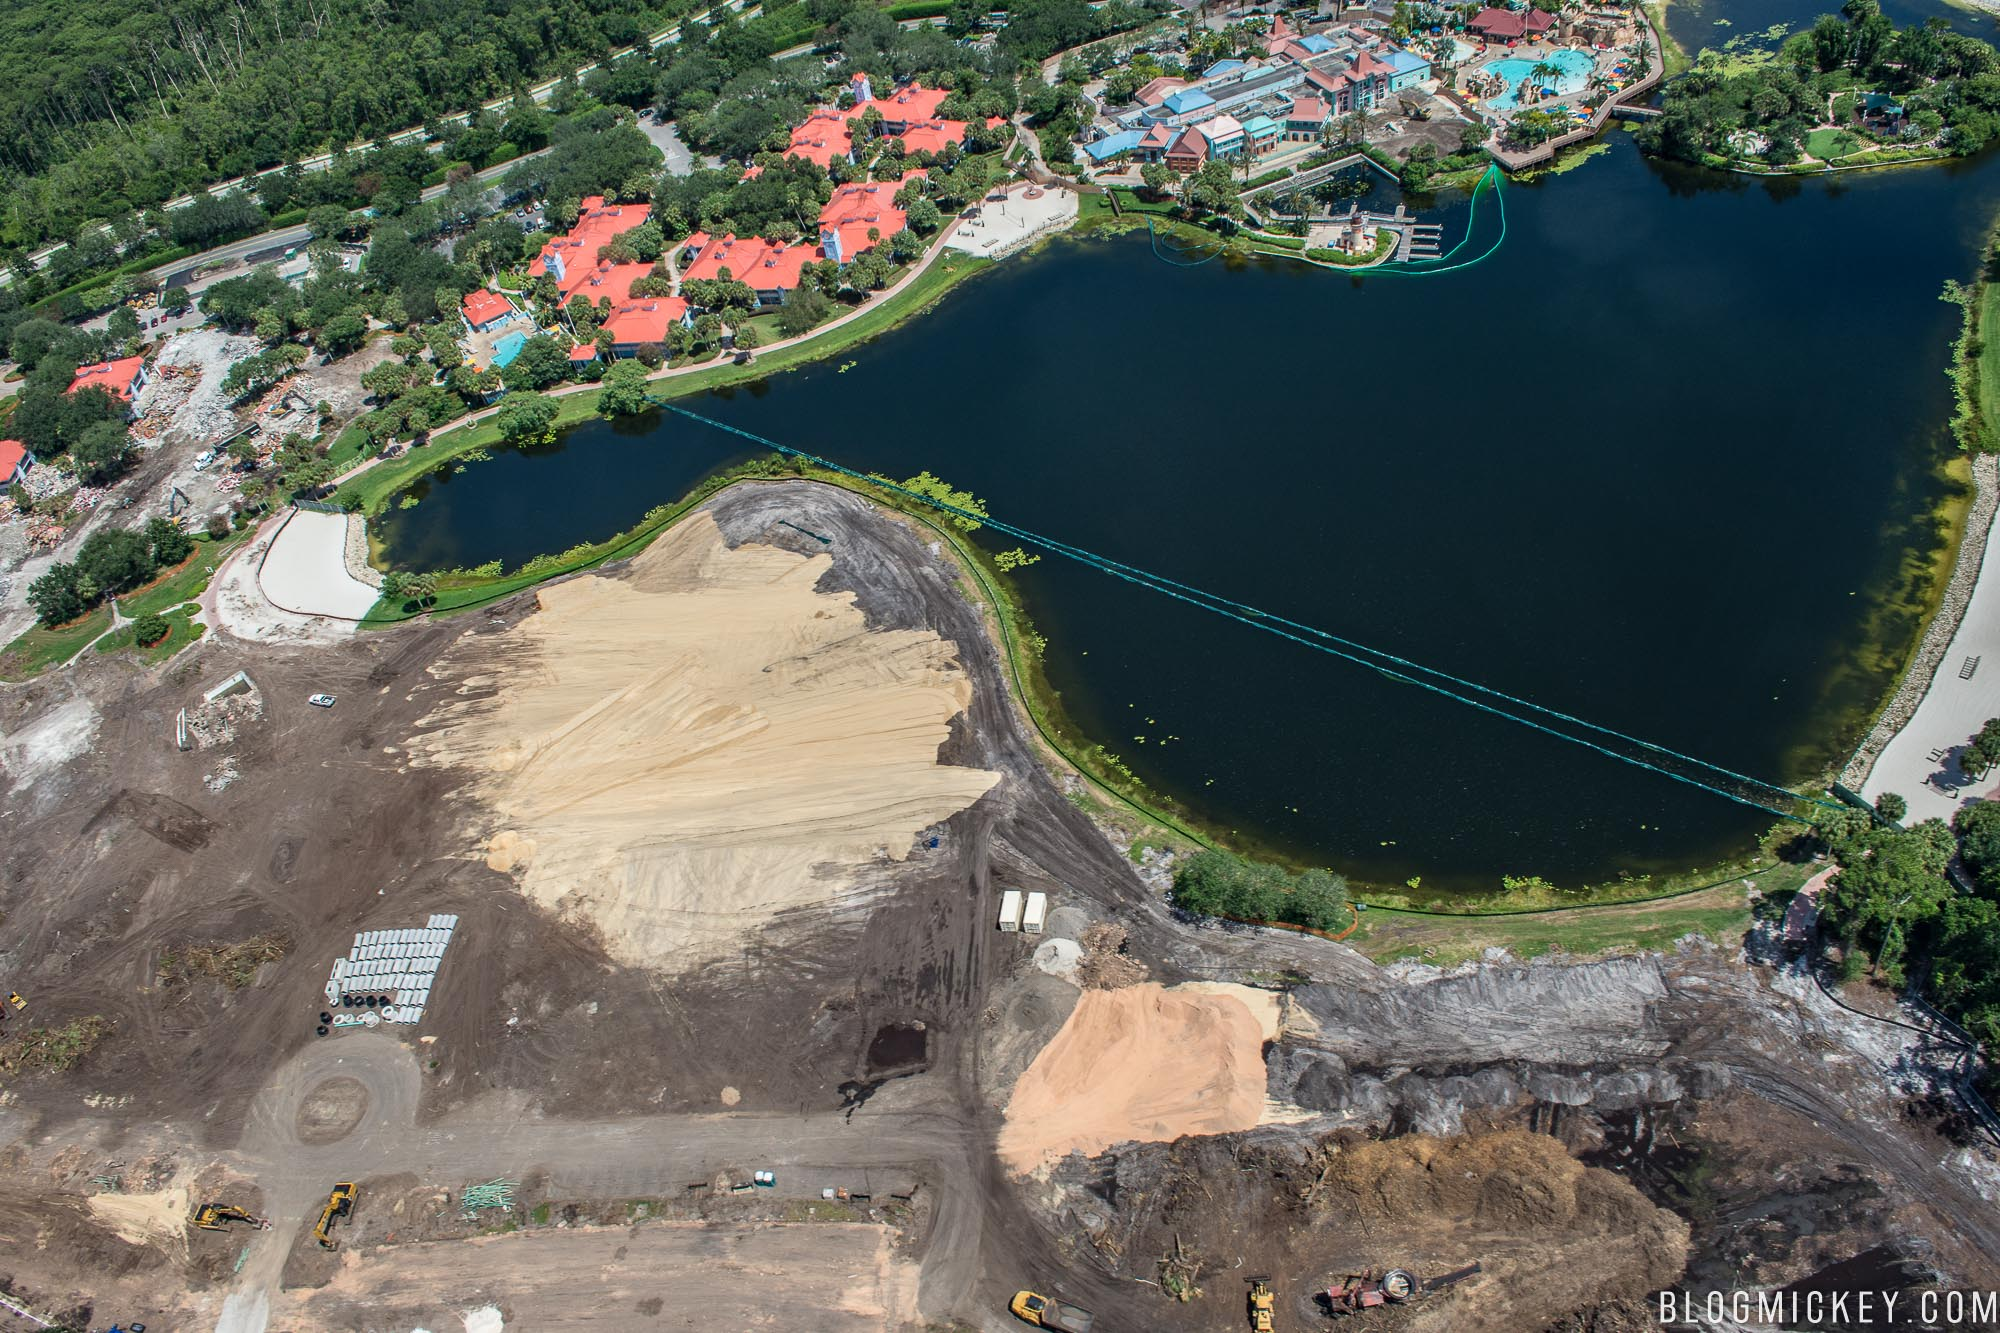 Well Be Sure To Include This Massive Expansion Of Caribbean Beach In Future Aerial Flight Updates On Blog Mickey As We Watch The Tower Rise Out